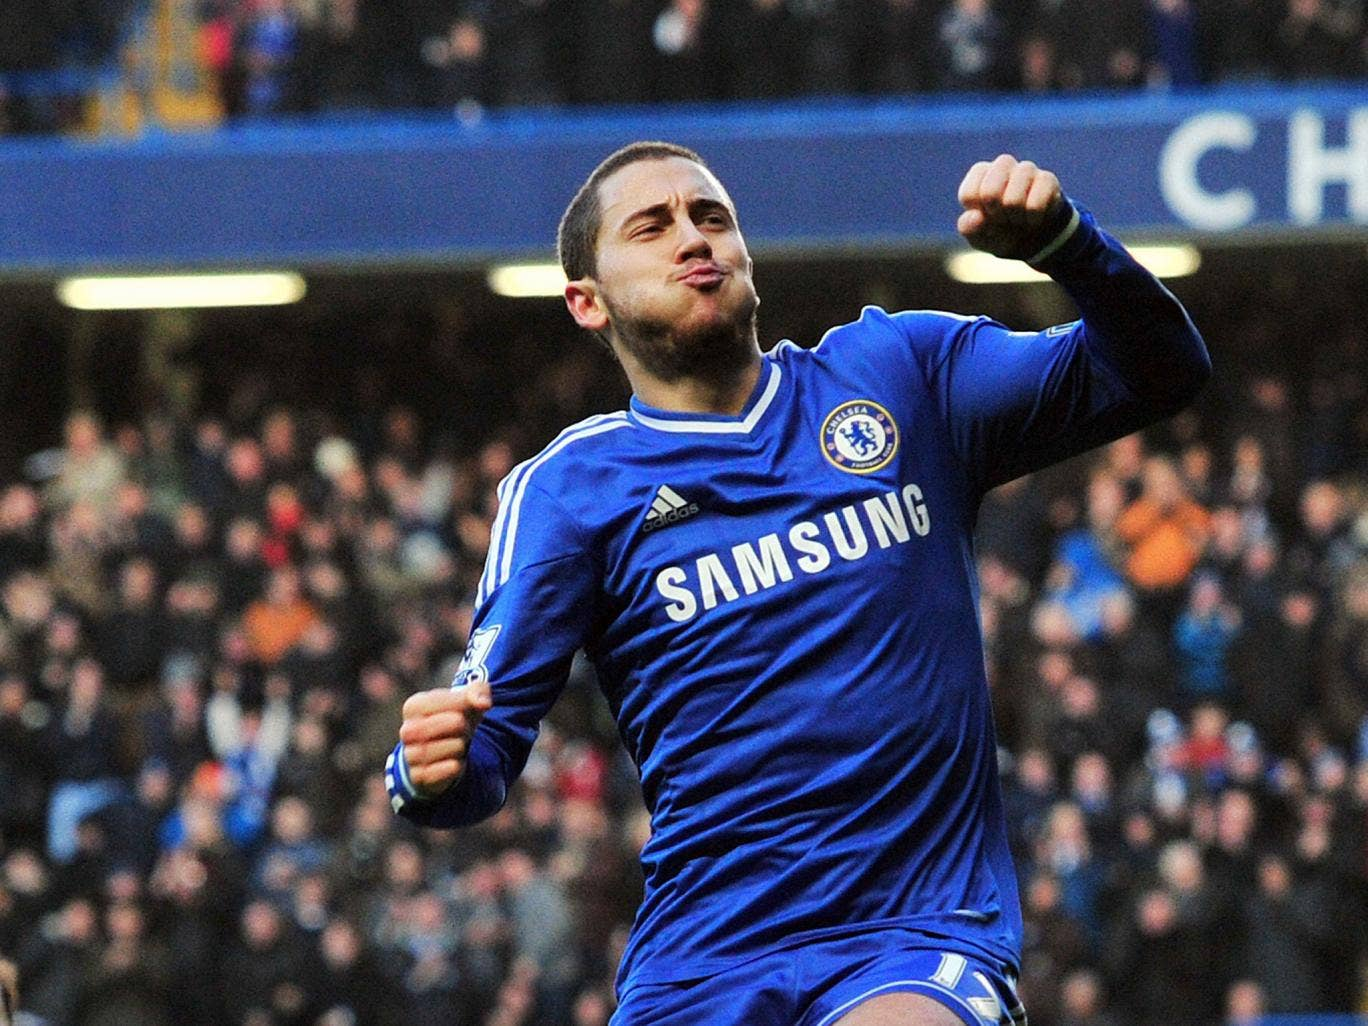 Eden Hazard has learnt to work for the team and seeks to dominate games, claims Jose Mourinho